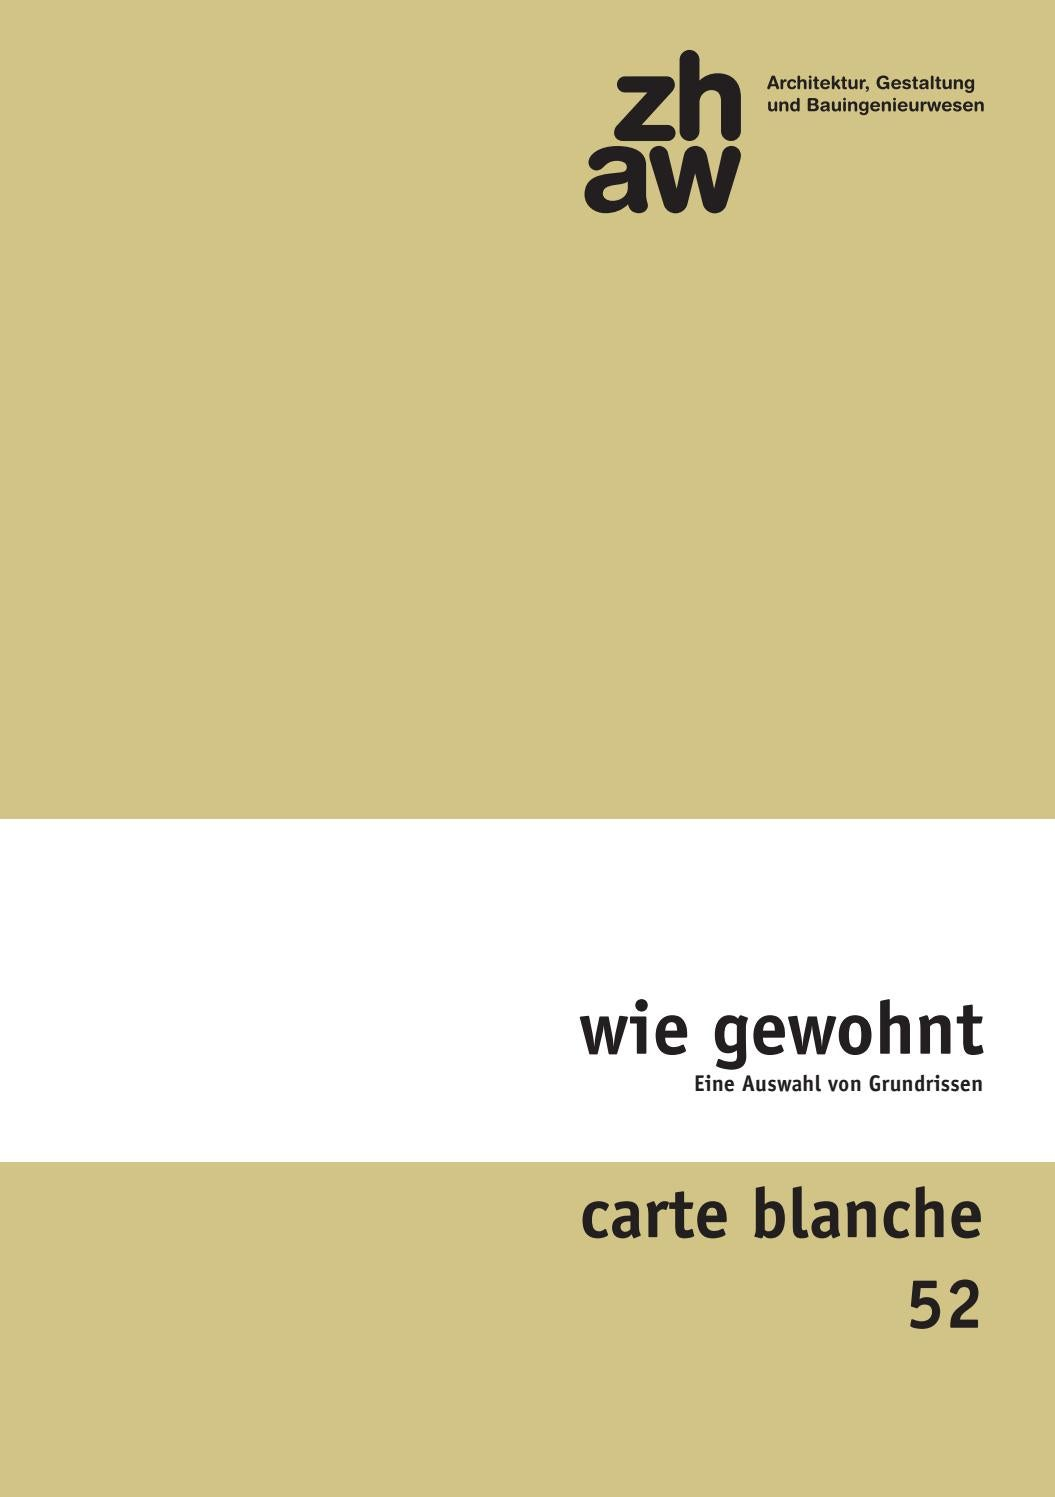 carte blanche 52, wie gewohnt by ZHAW Departement Architektur ...